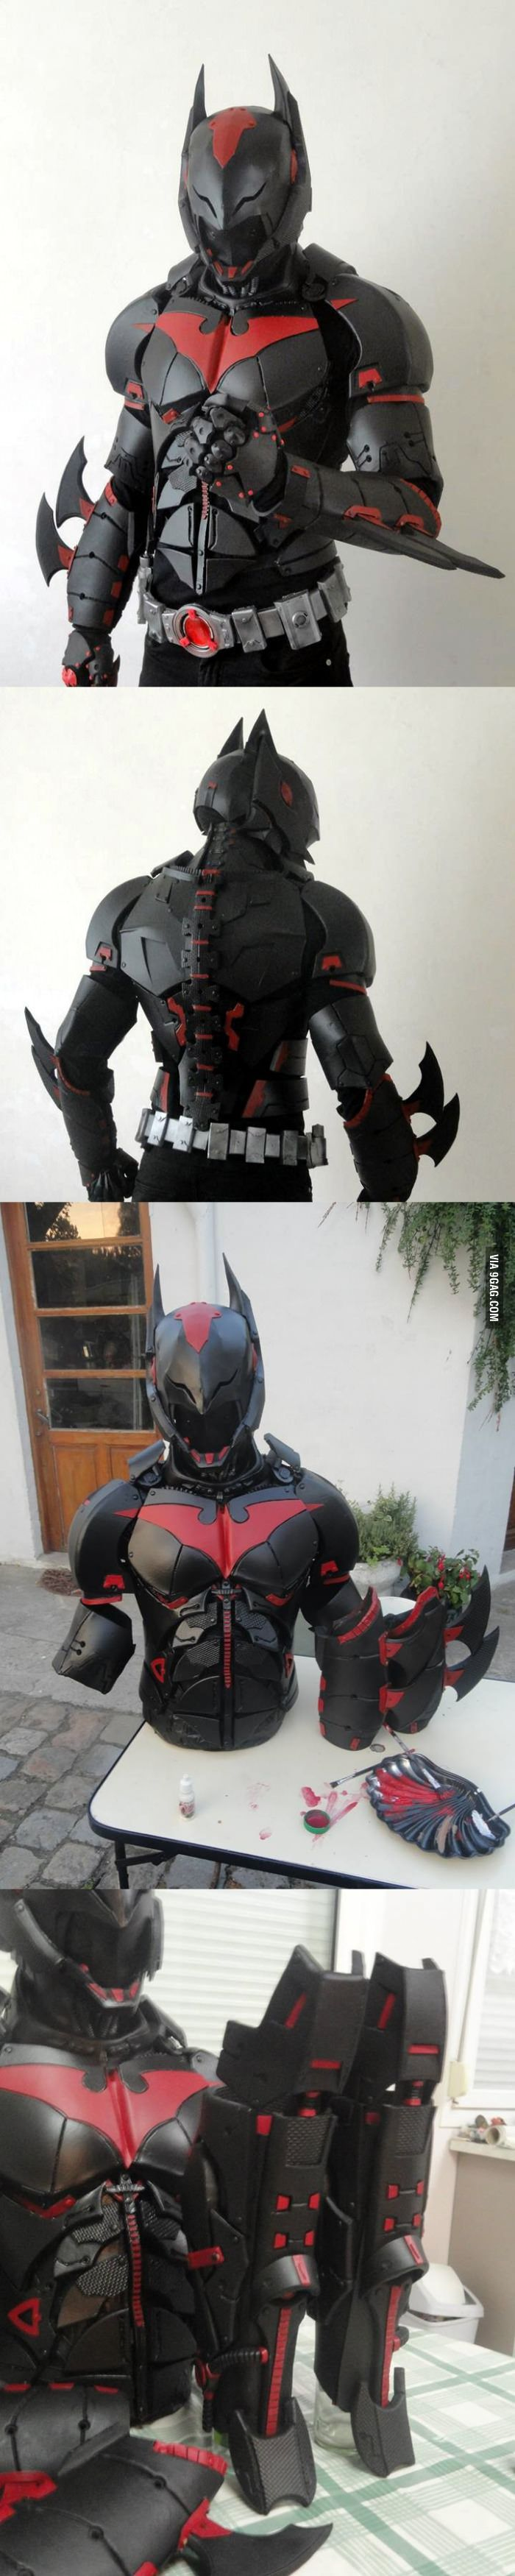 Beyond Arkham I WANT THIS SUIT!